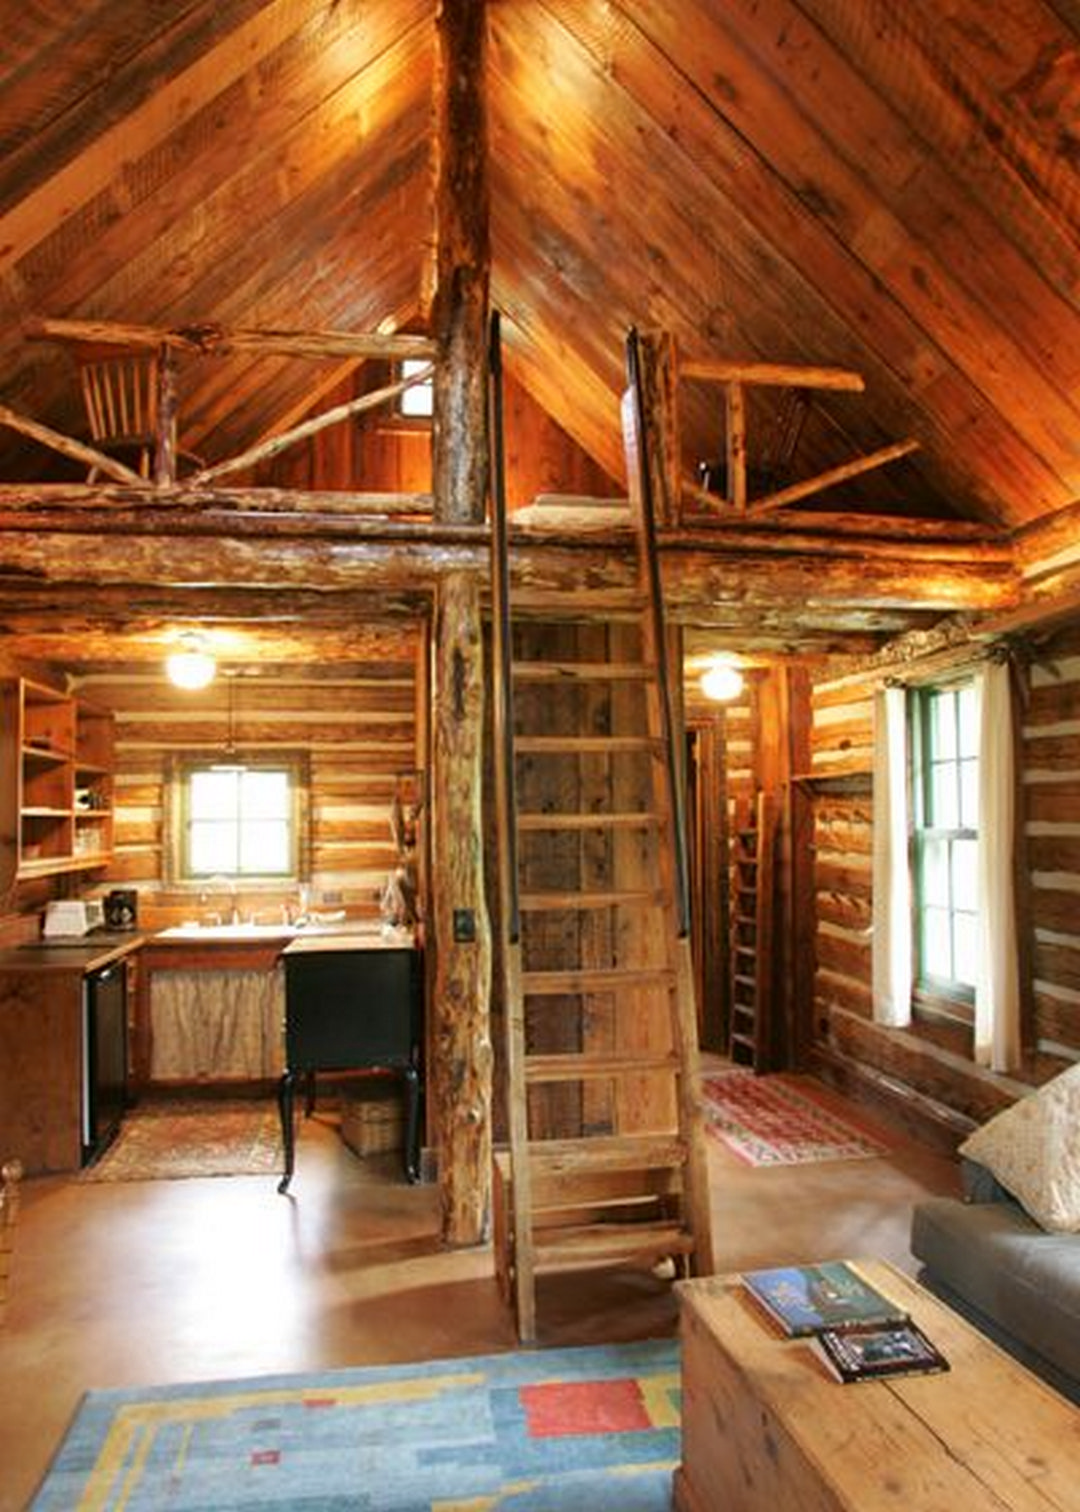 49 gorgeous rustic cabin interior ideas cabin interiors for Cabin designs with lofts